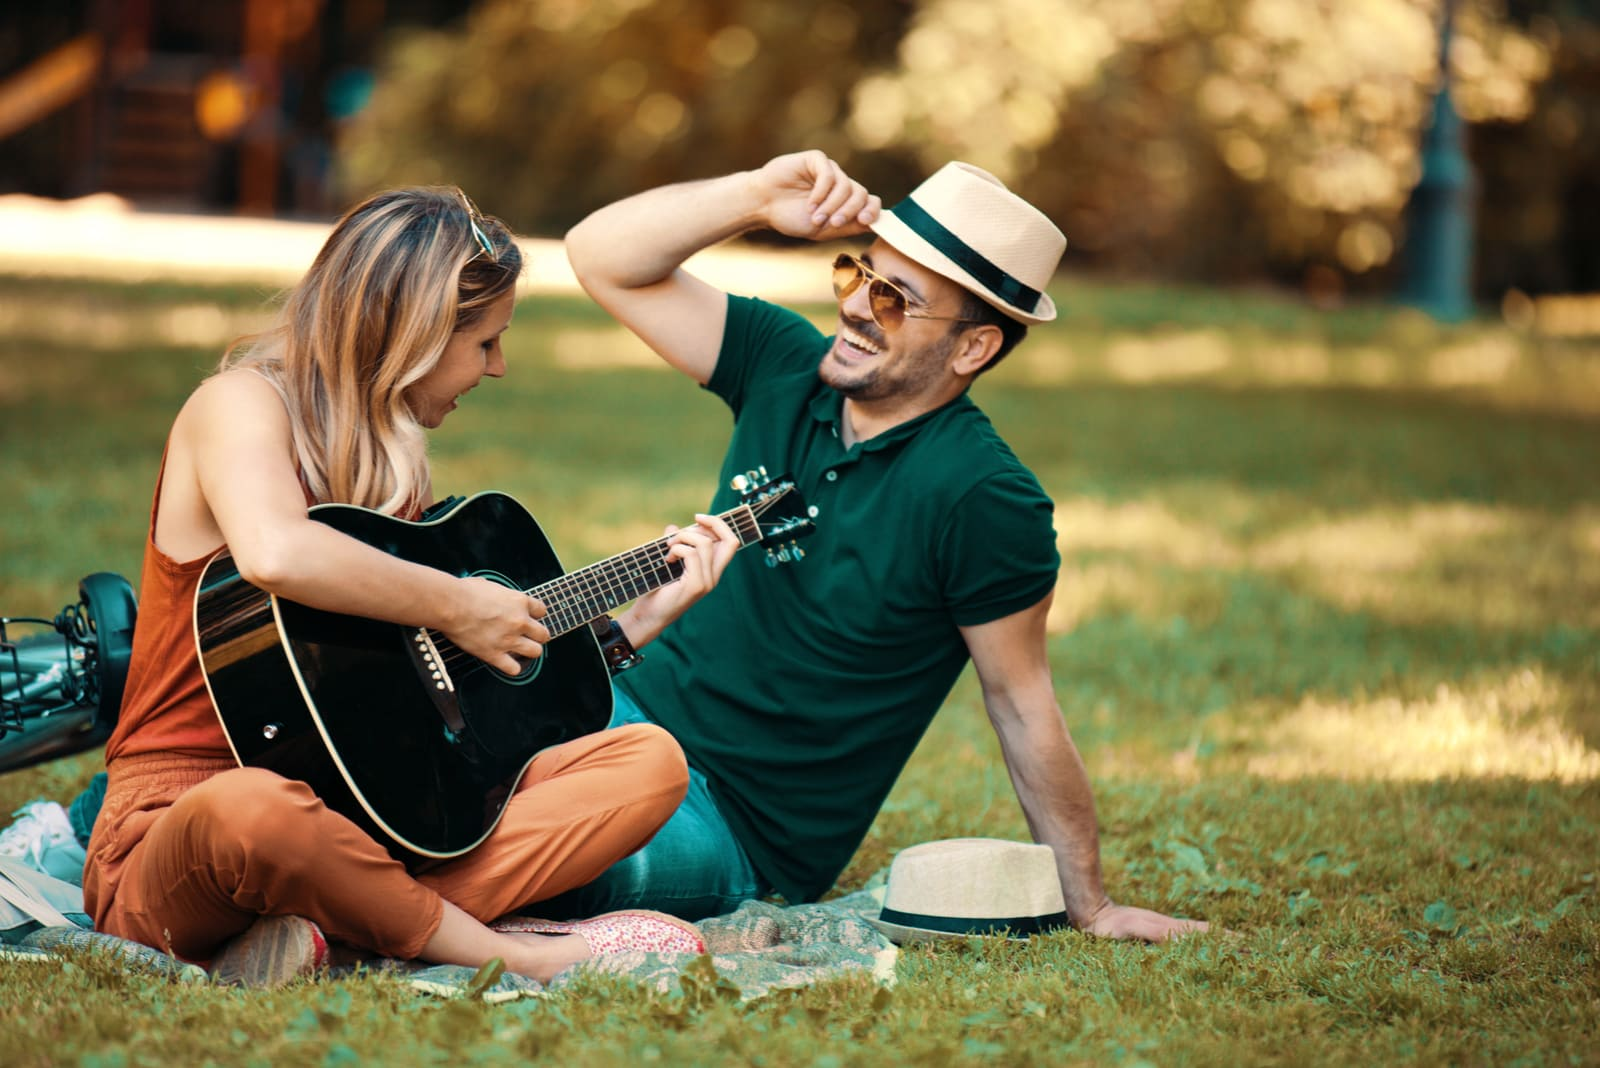 Young couple enjoying park and playing guitar